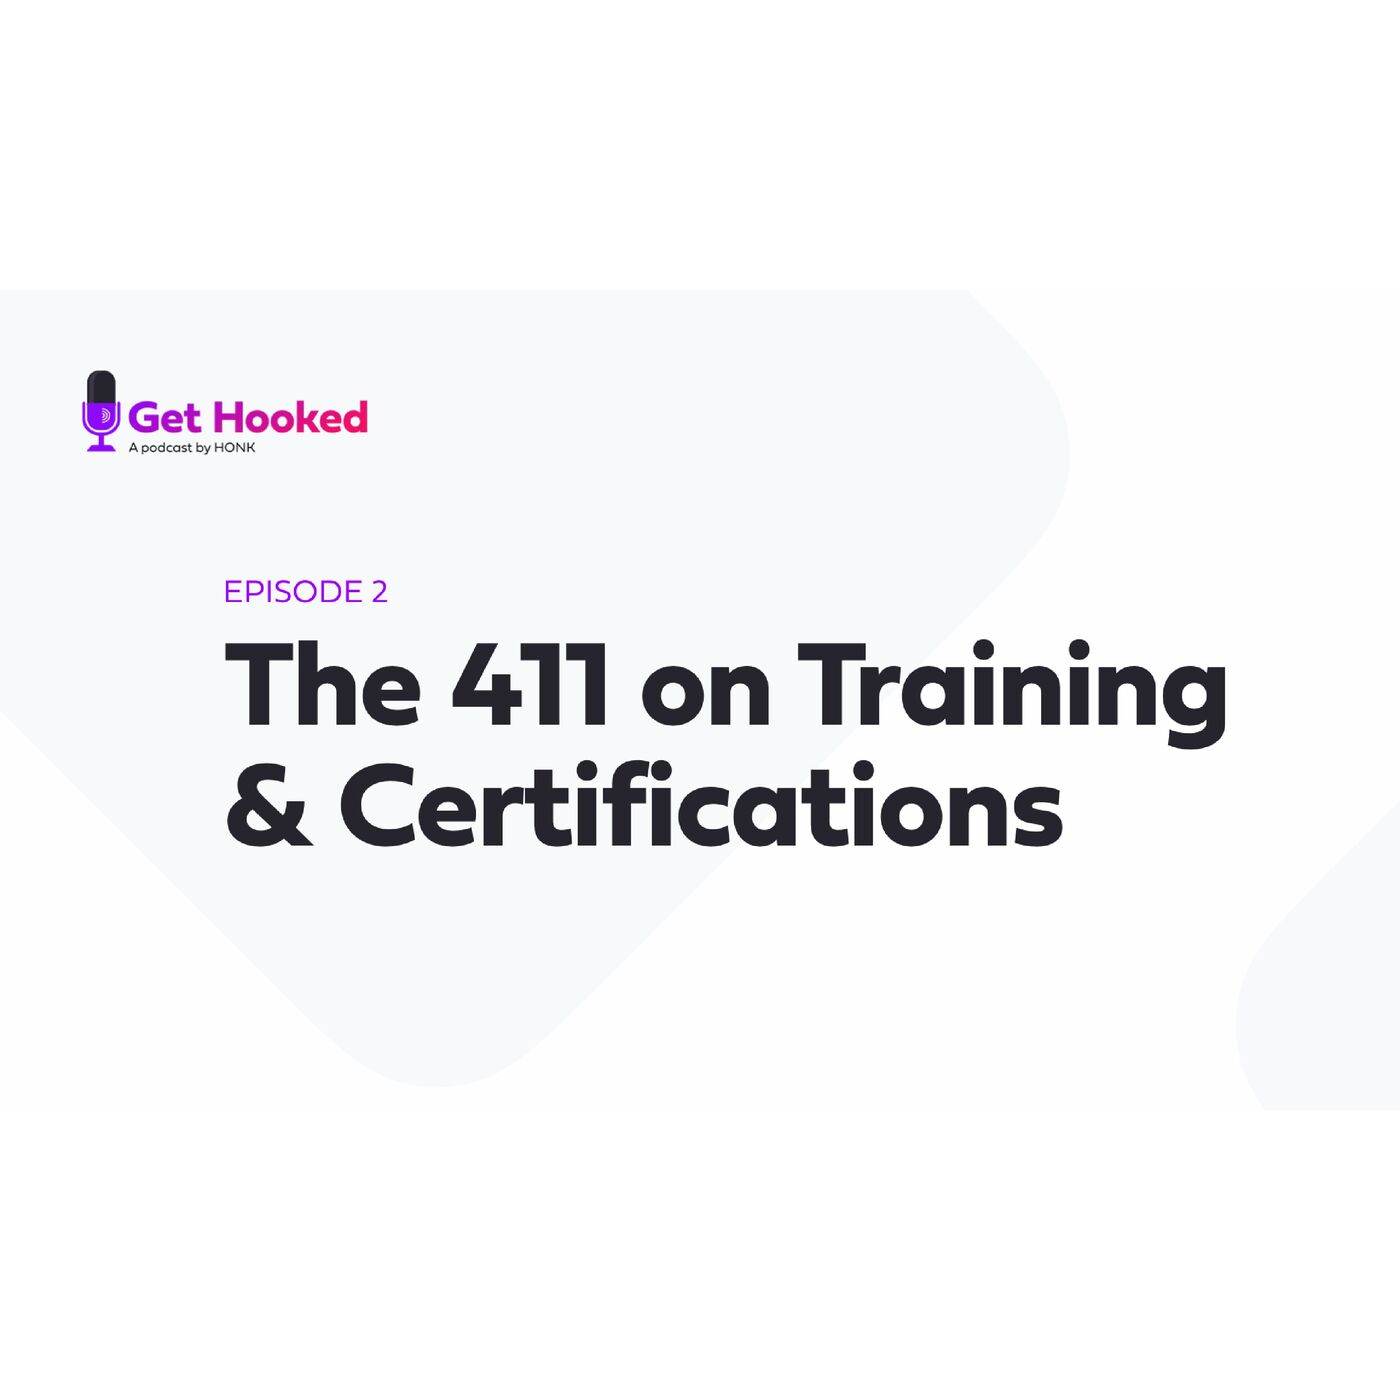 Get Hooked Episode 2: The 411 on Training & Certifications: A discussion with WreckMaster President Justin Cruse